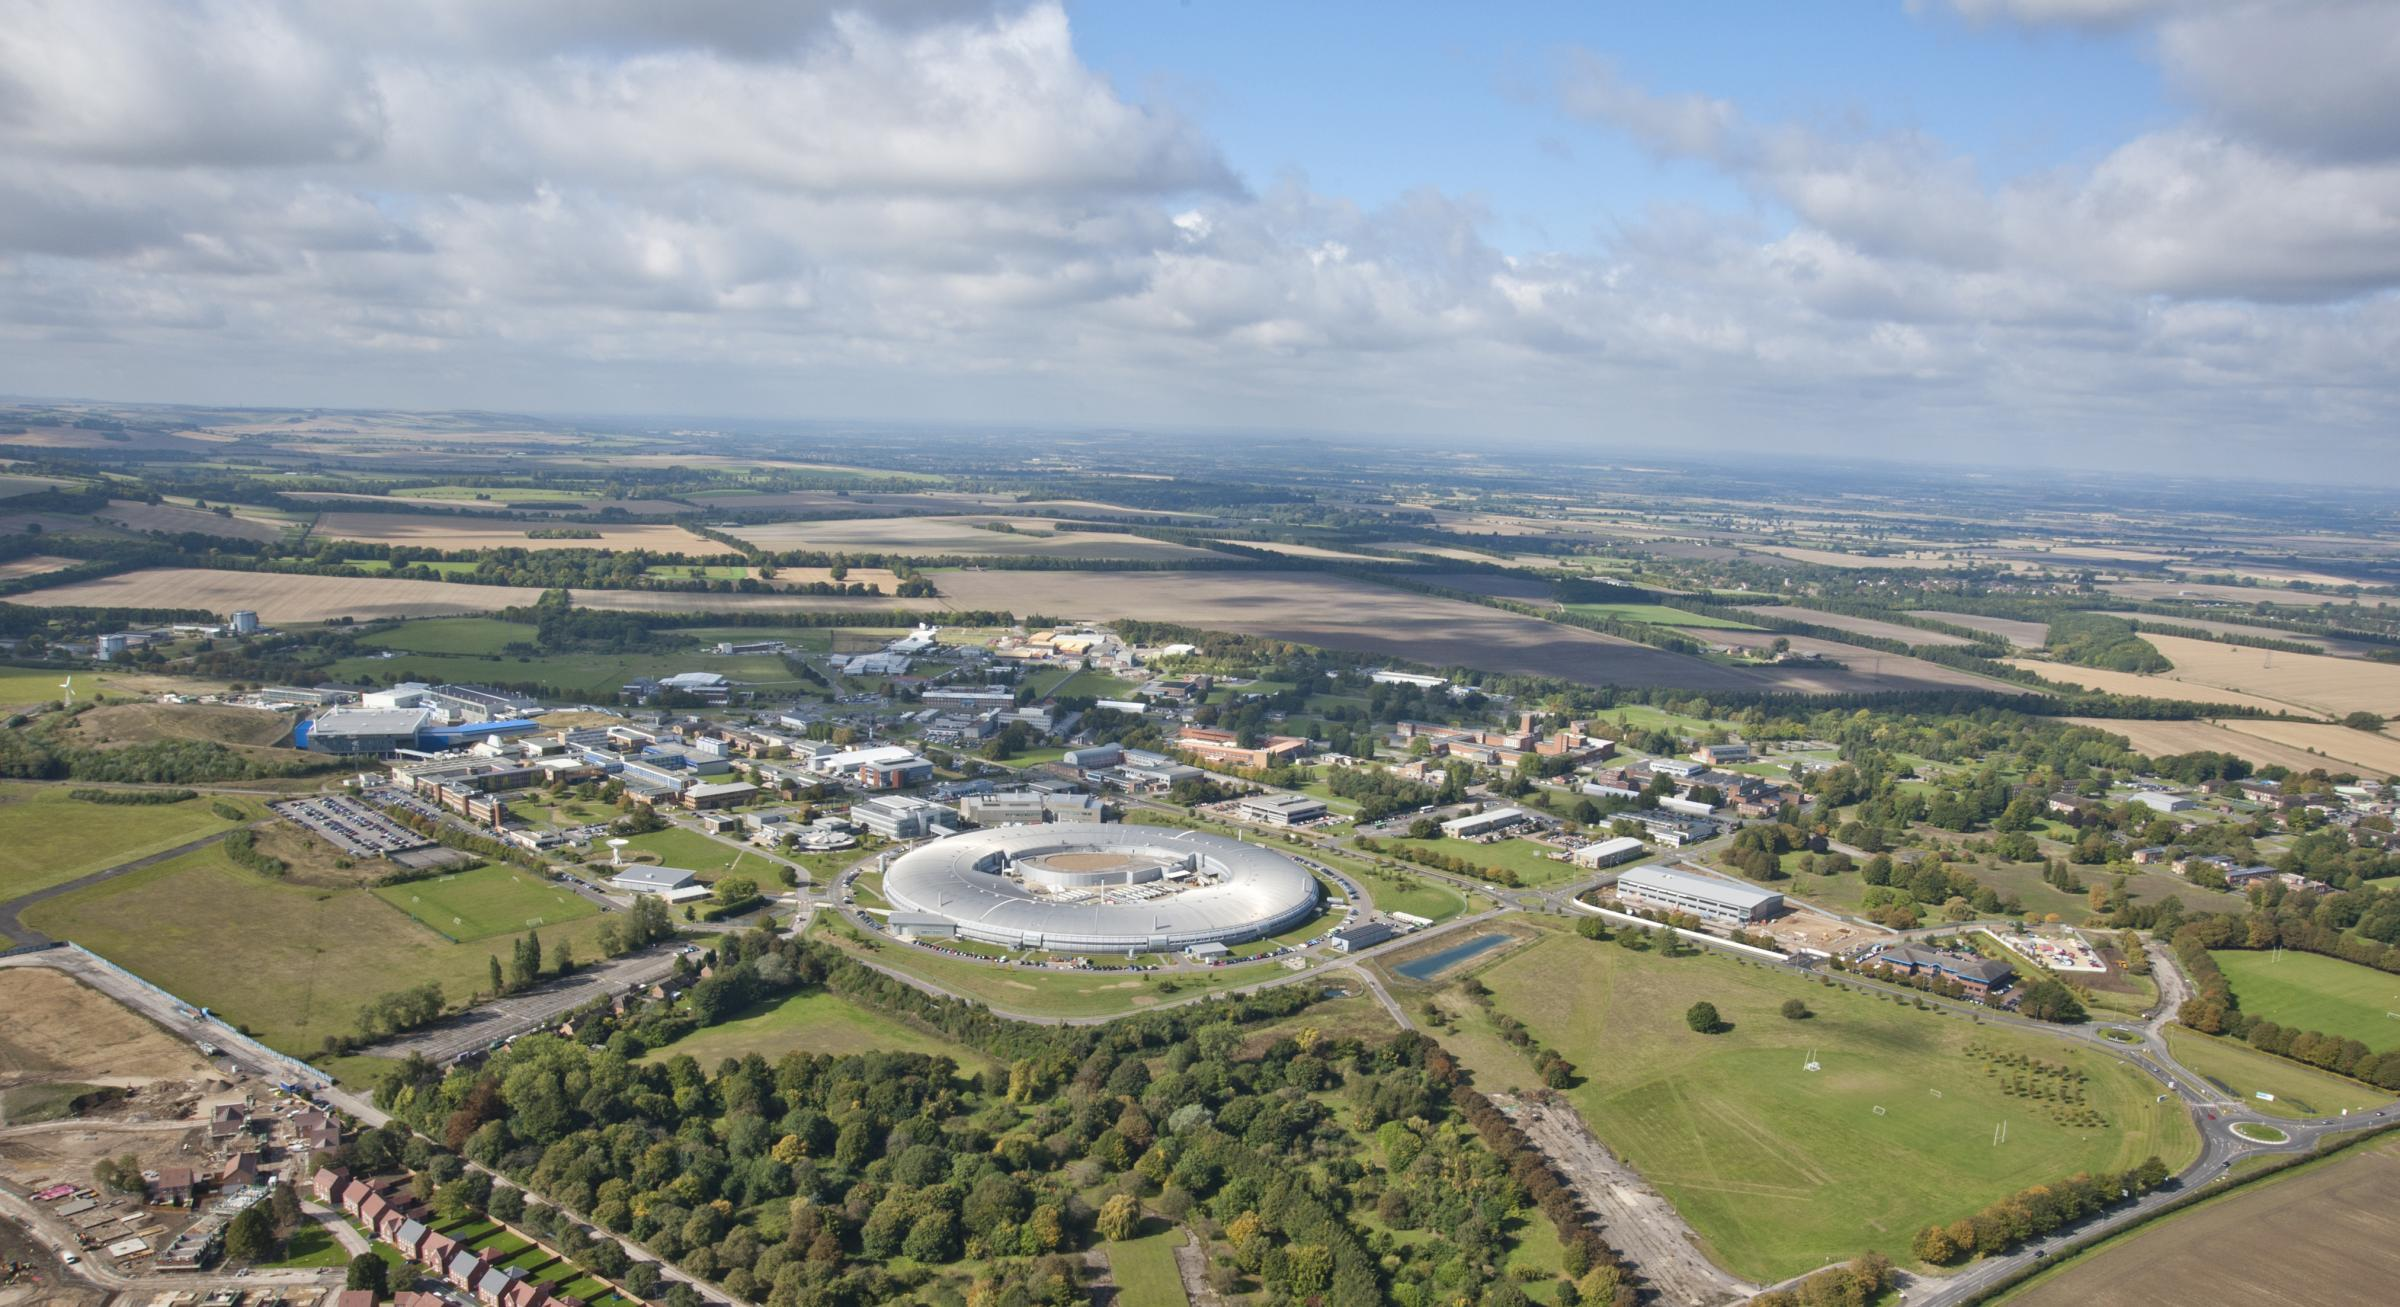 Harwell campus aerial view